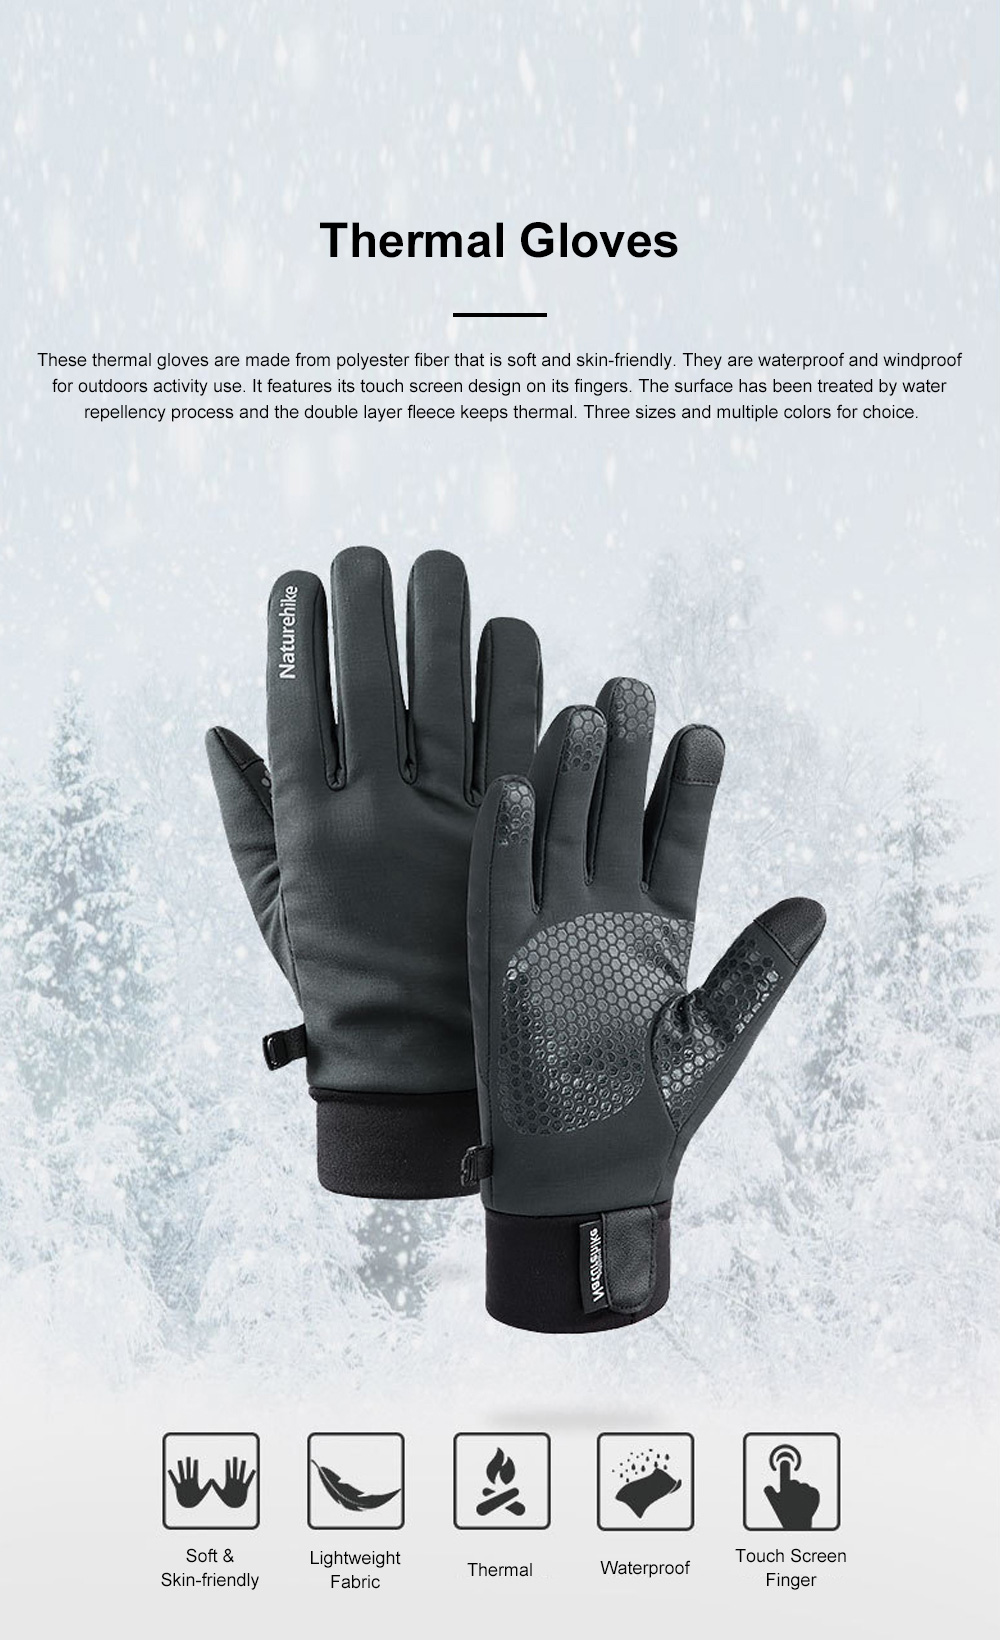 Naturehike Warm Gloves for Outdoors Running Hiking Waterproof Thermal Sports Gloves Touch Screen Designed Gloves 0